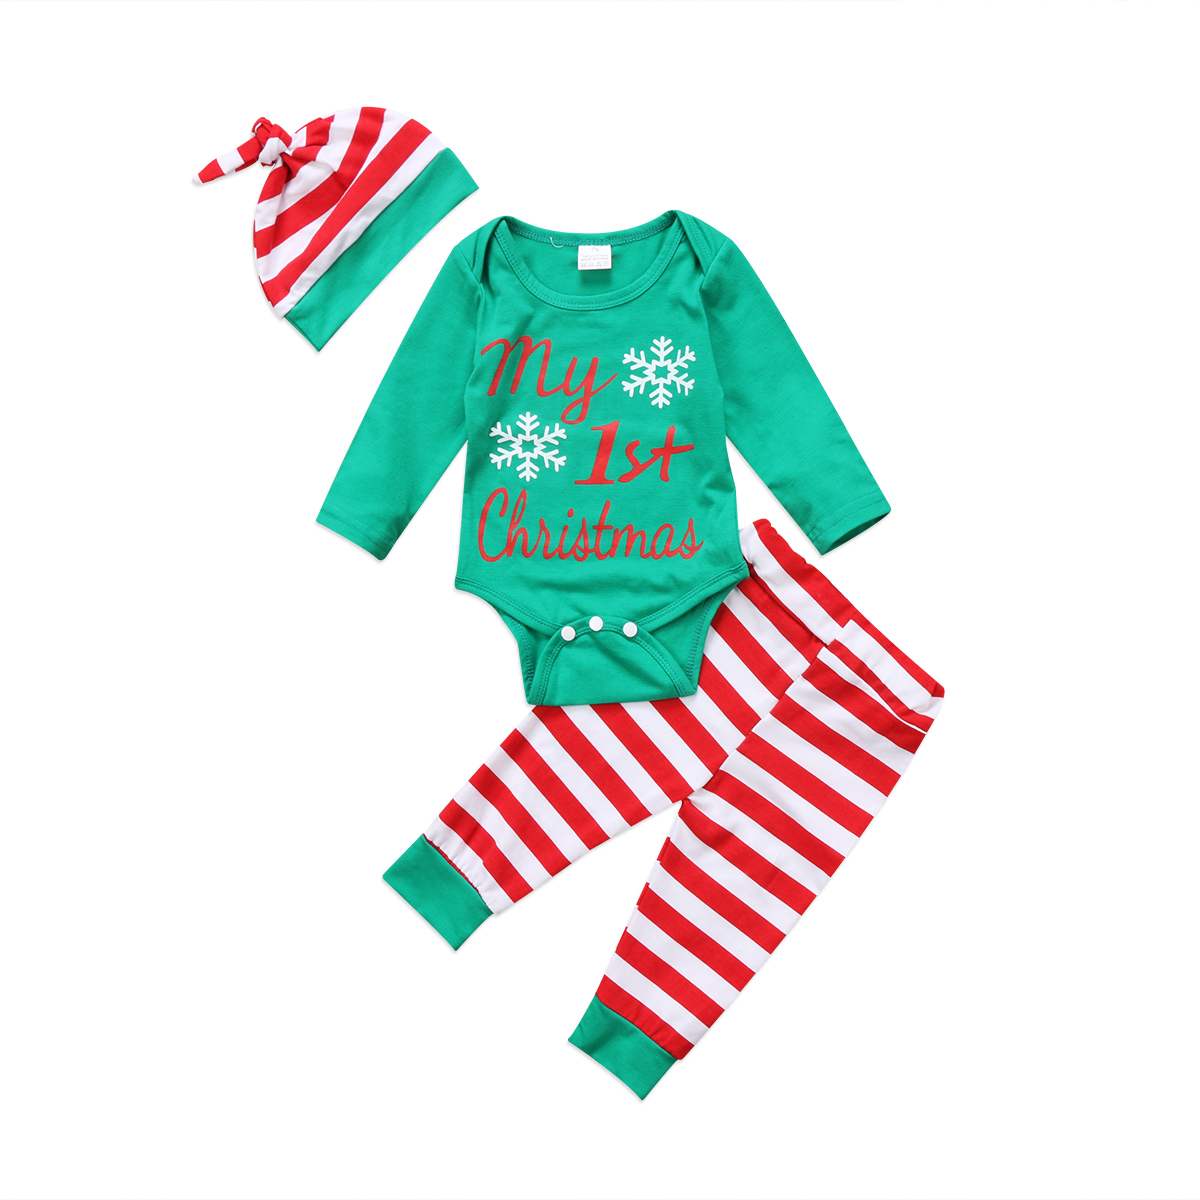 be07e7331 Clothing Sets Newborn Baby Boy Girls First Christmas Clothes Romper Striped  Pant+Hat Outfits Set